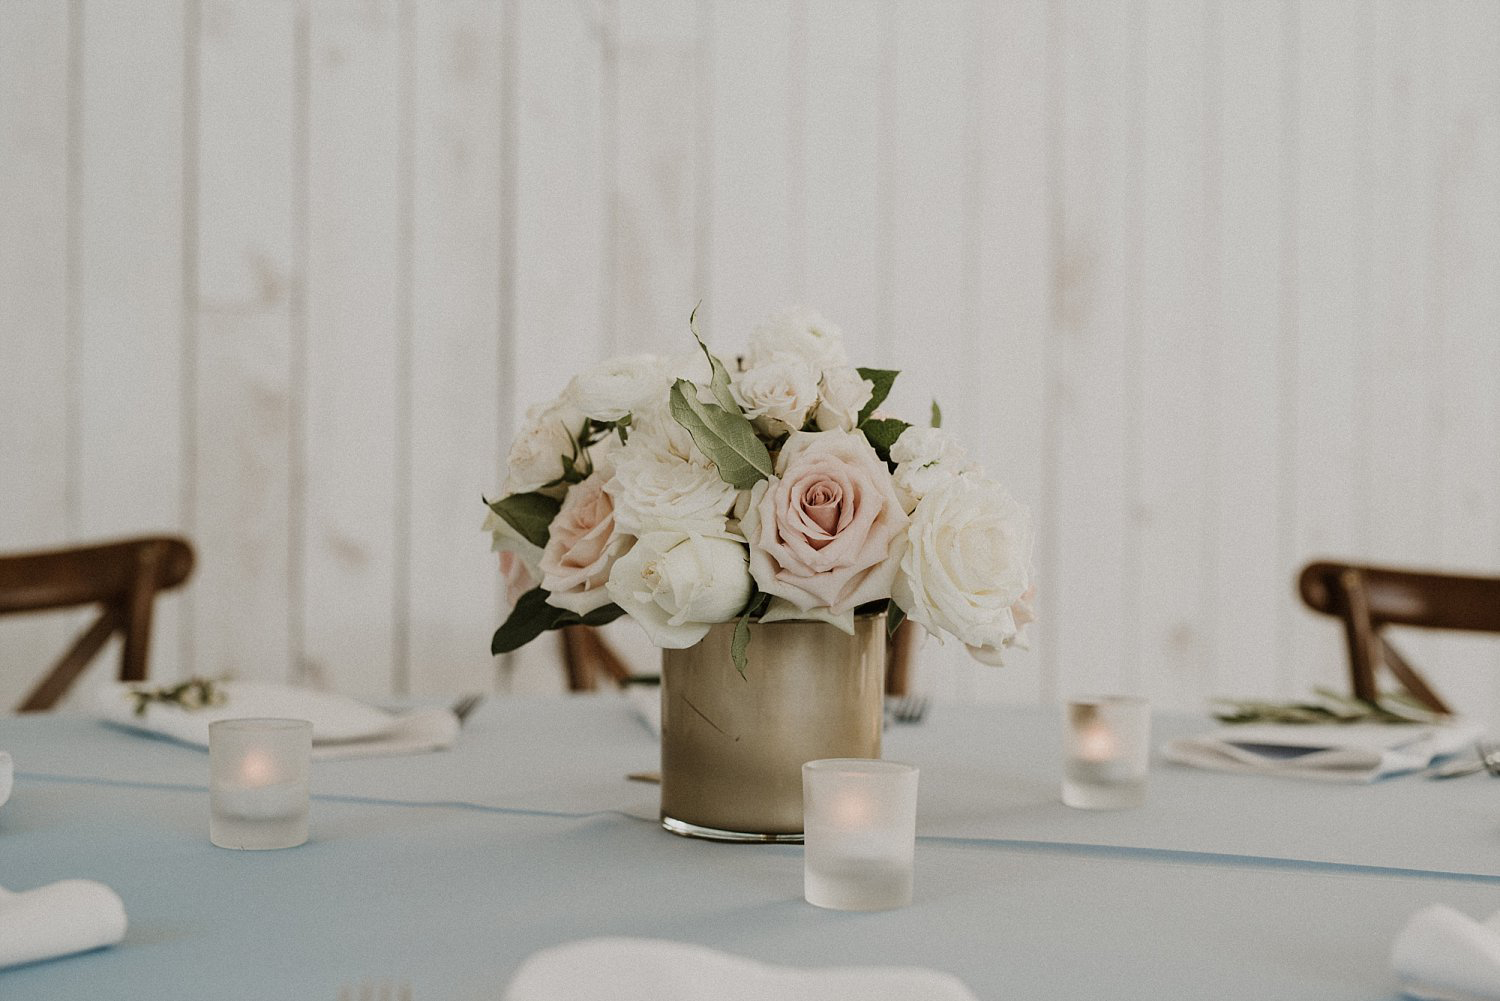 Simple white and blush flower arrangement in a gold vase on a light blue linen